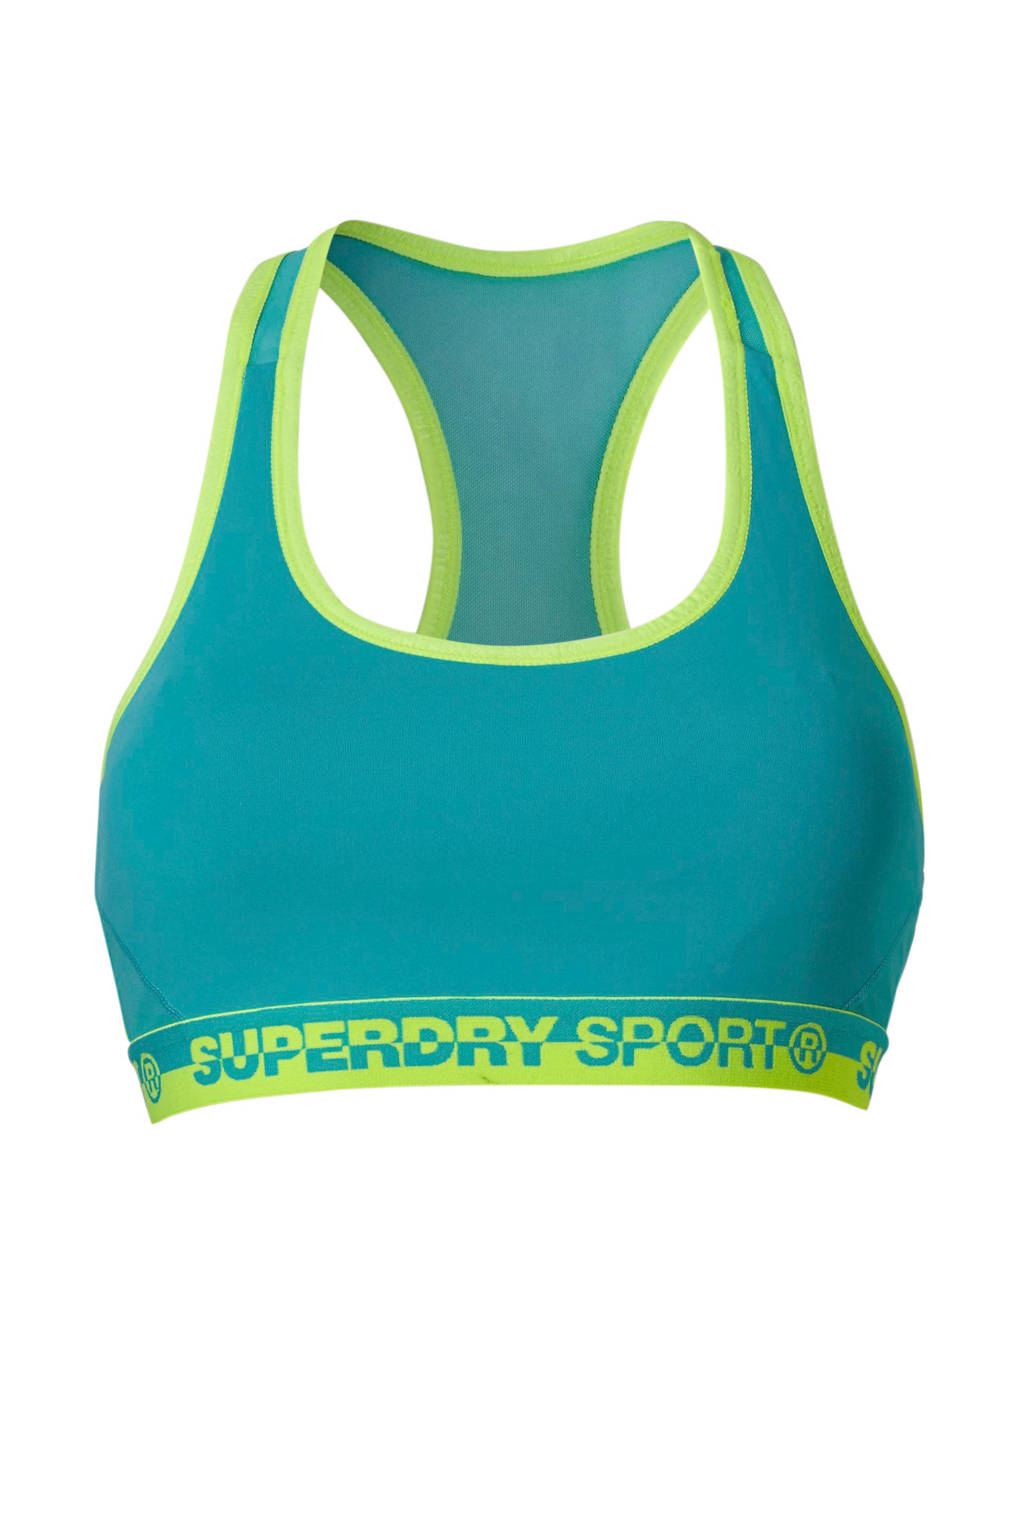 Superdry Sport Level 2 sportbh turquoise, Turquoise/limegroen